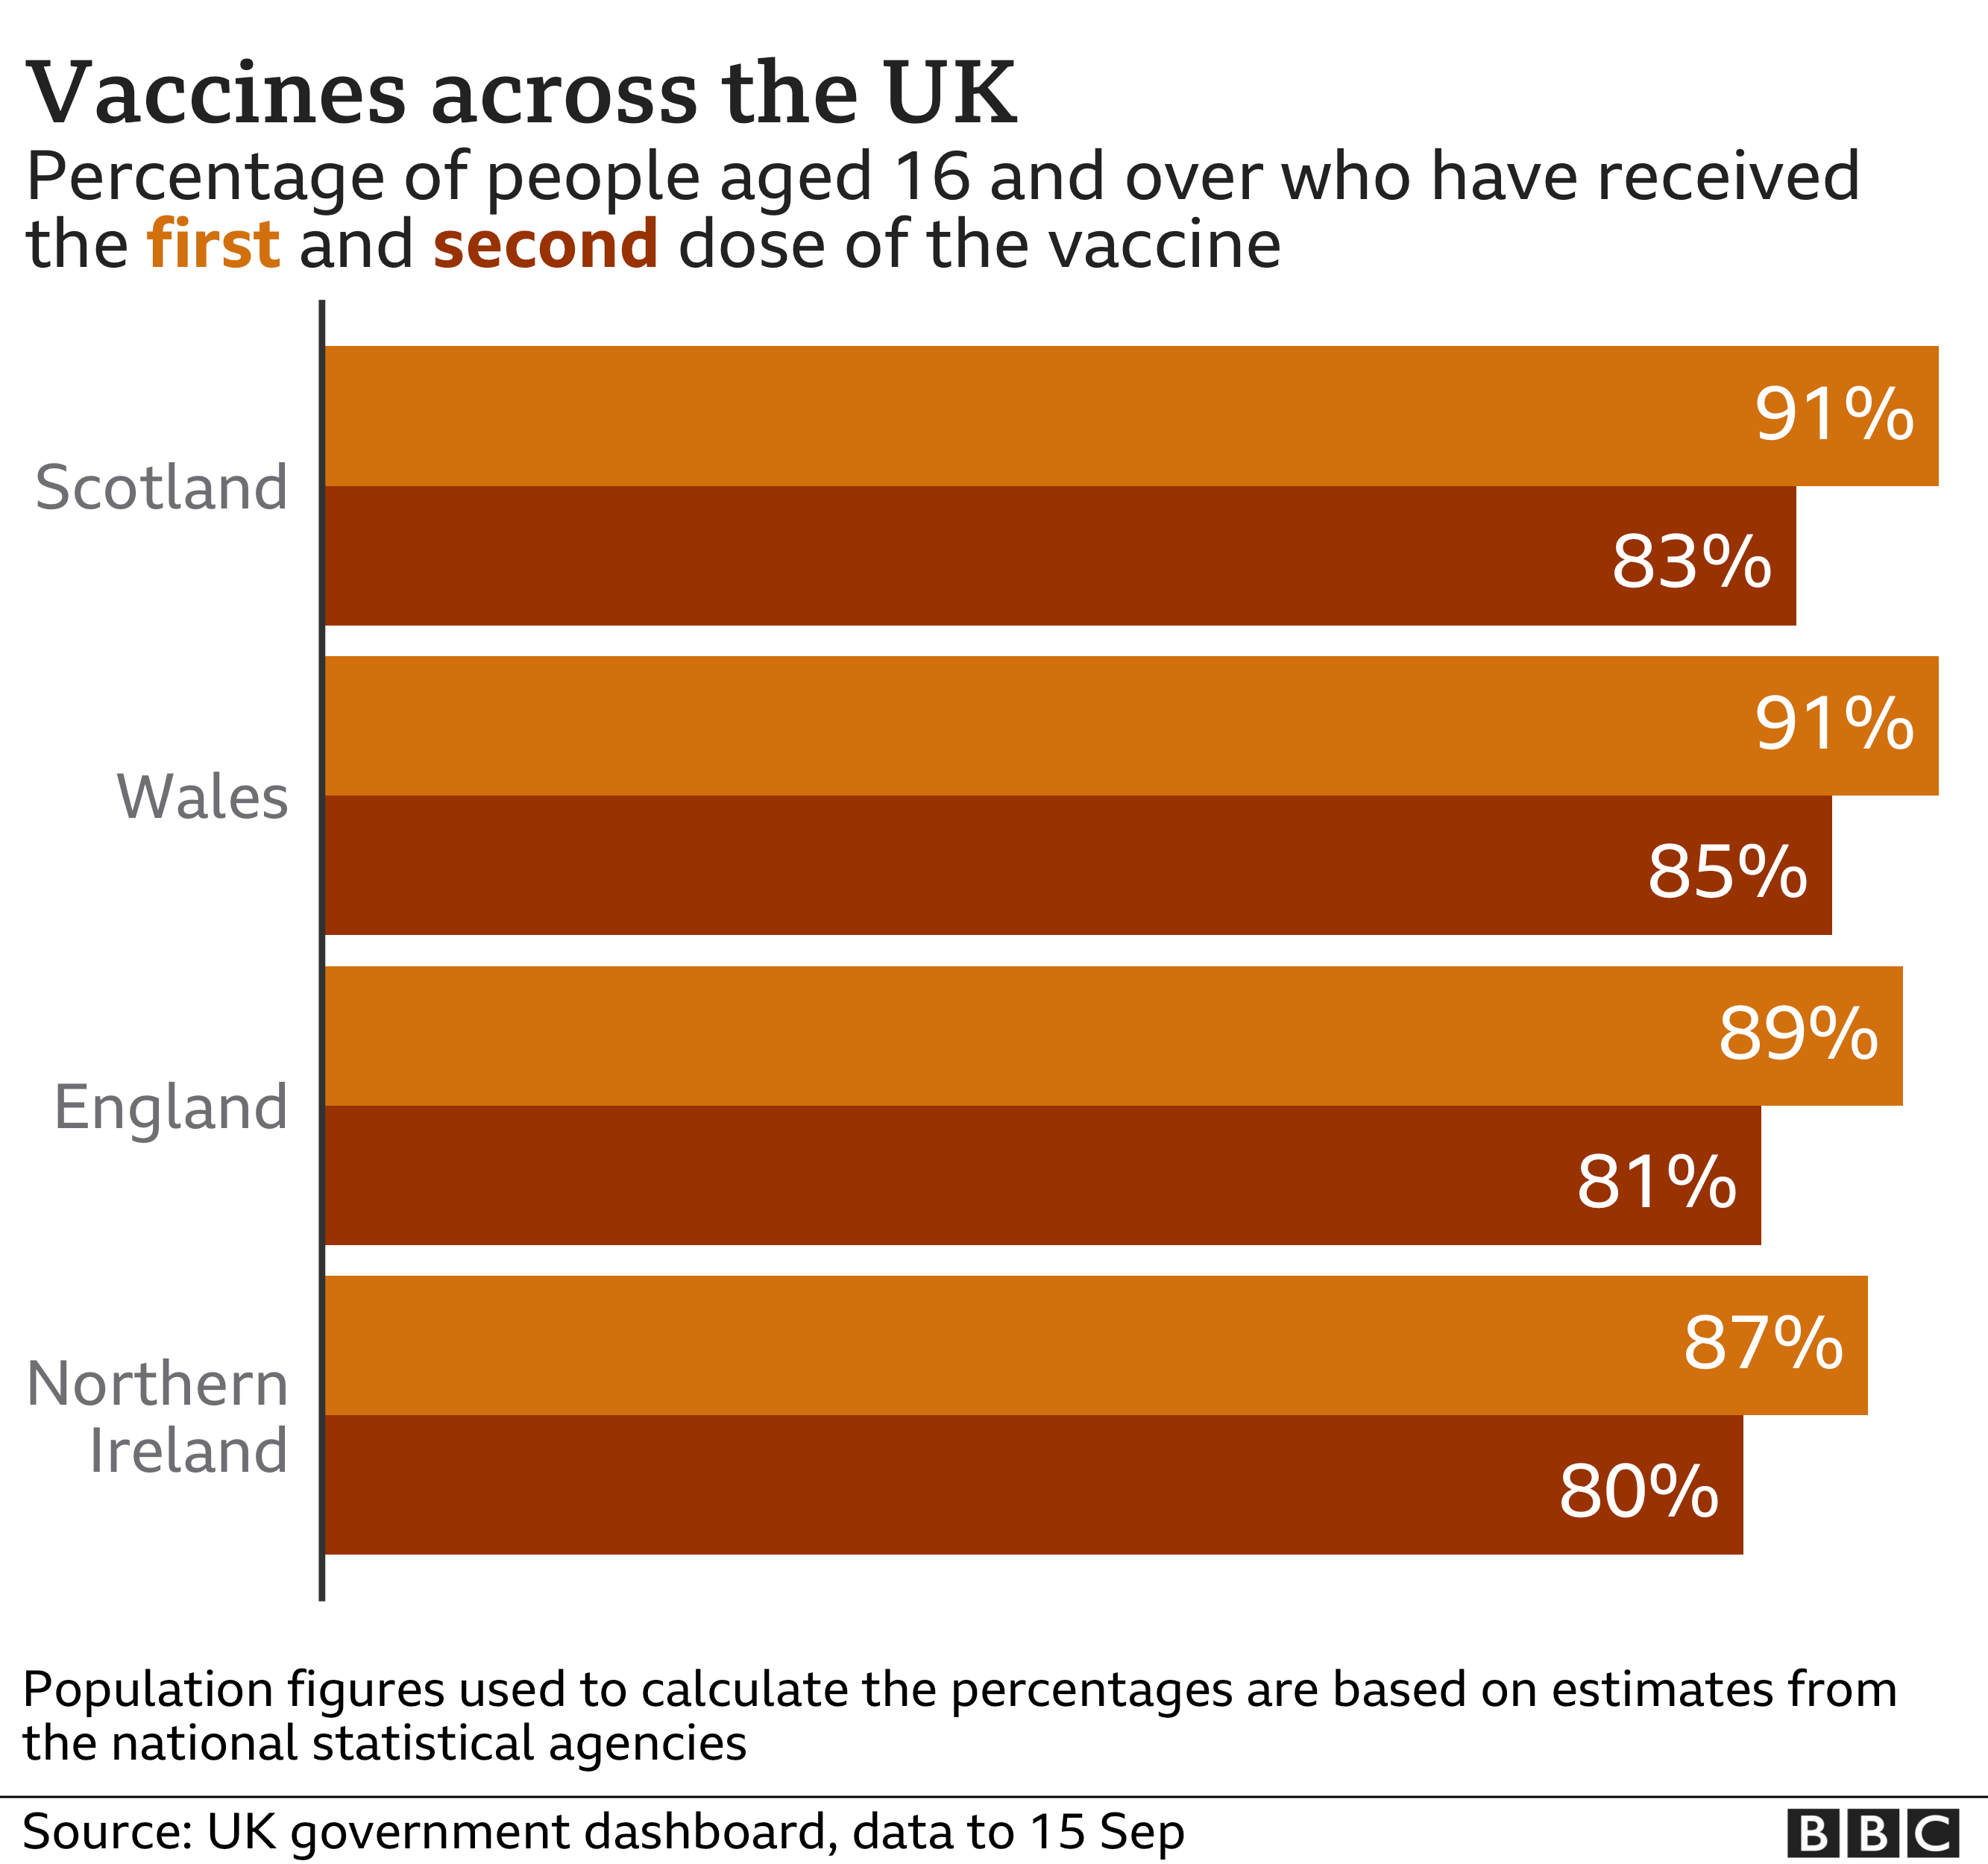 Chart of vaccine take up by UK nation - 91% of those aged 16 and over in Scotland and Wales have had at least one dose, compared with 89% in England and 87% in Northern Ireland